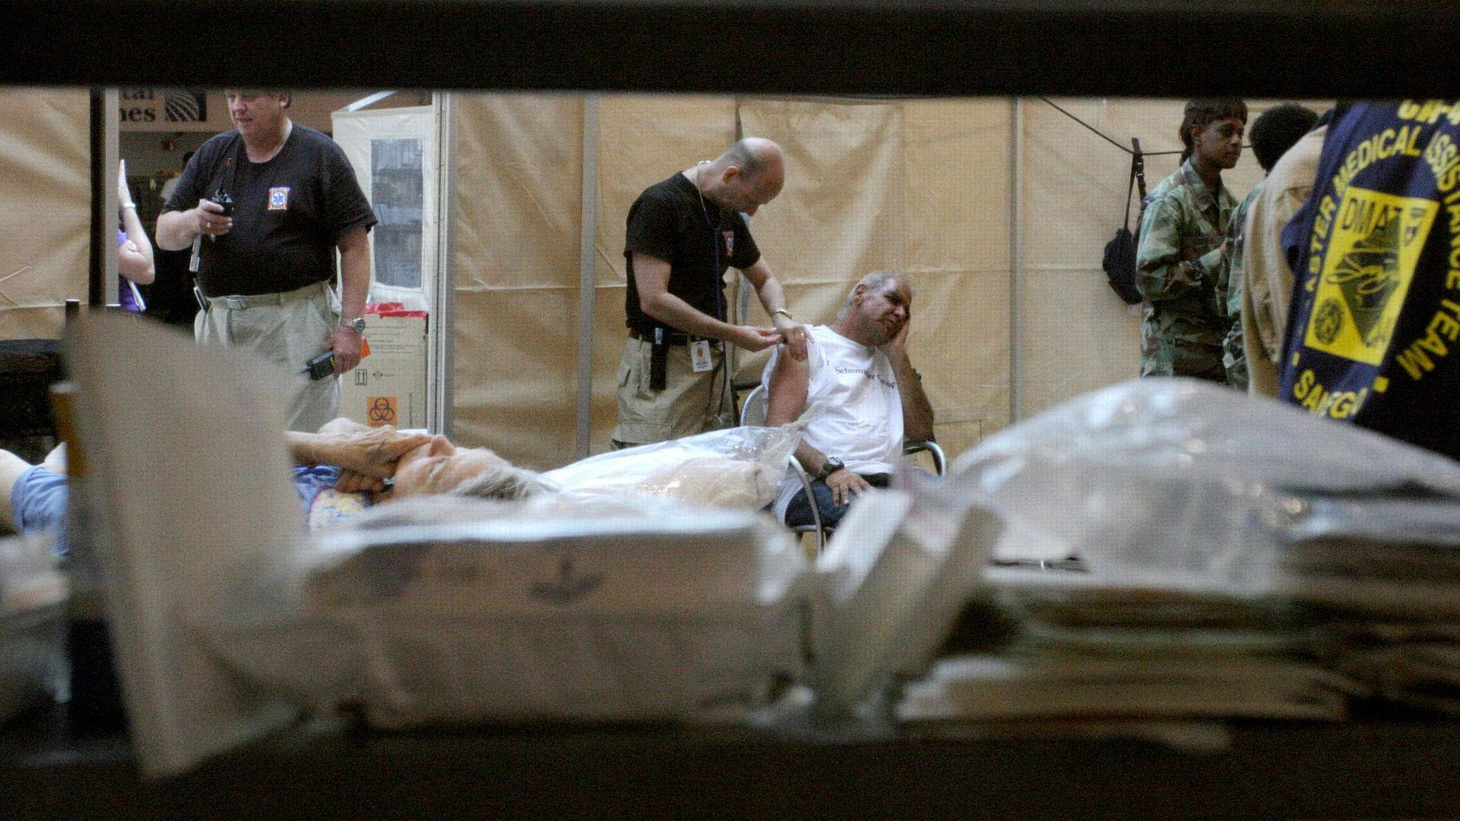 The US is faced with a possible flu epidemic this fall, and plans are being made for extreme emergencies. If medical facilities are overwhelmed, who gets access first?  Who makes that decision? What can be learned from what happened in New Orleans after Katrina? Also, an update on deadly Los Angeles-area wildfires, and President Obama's commanding general assesses Afghanistan.